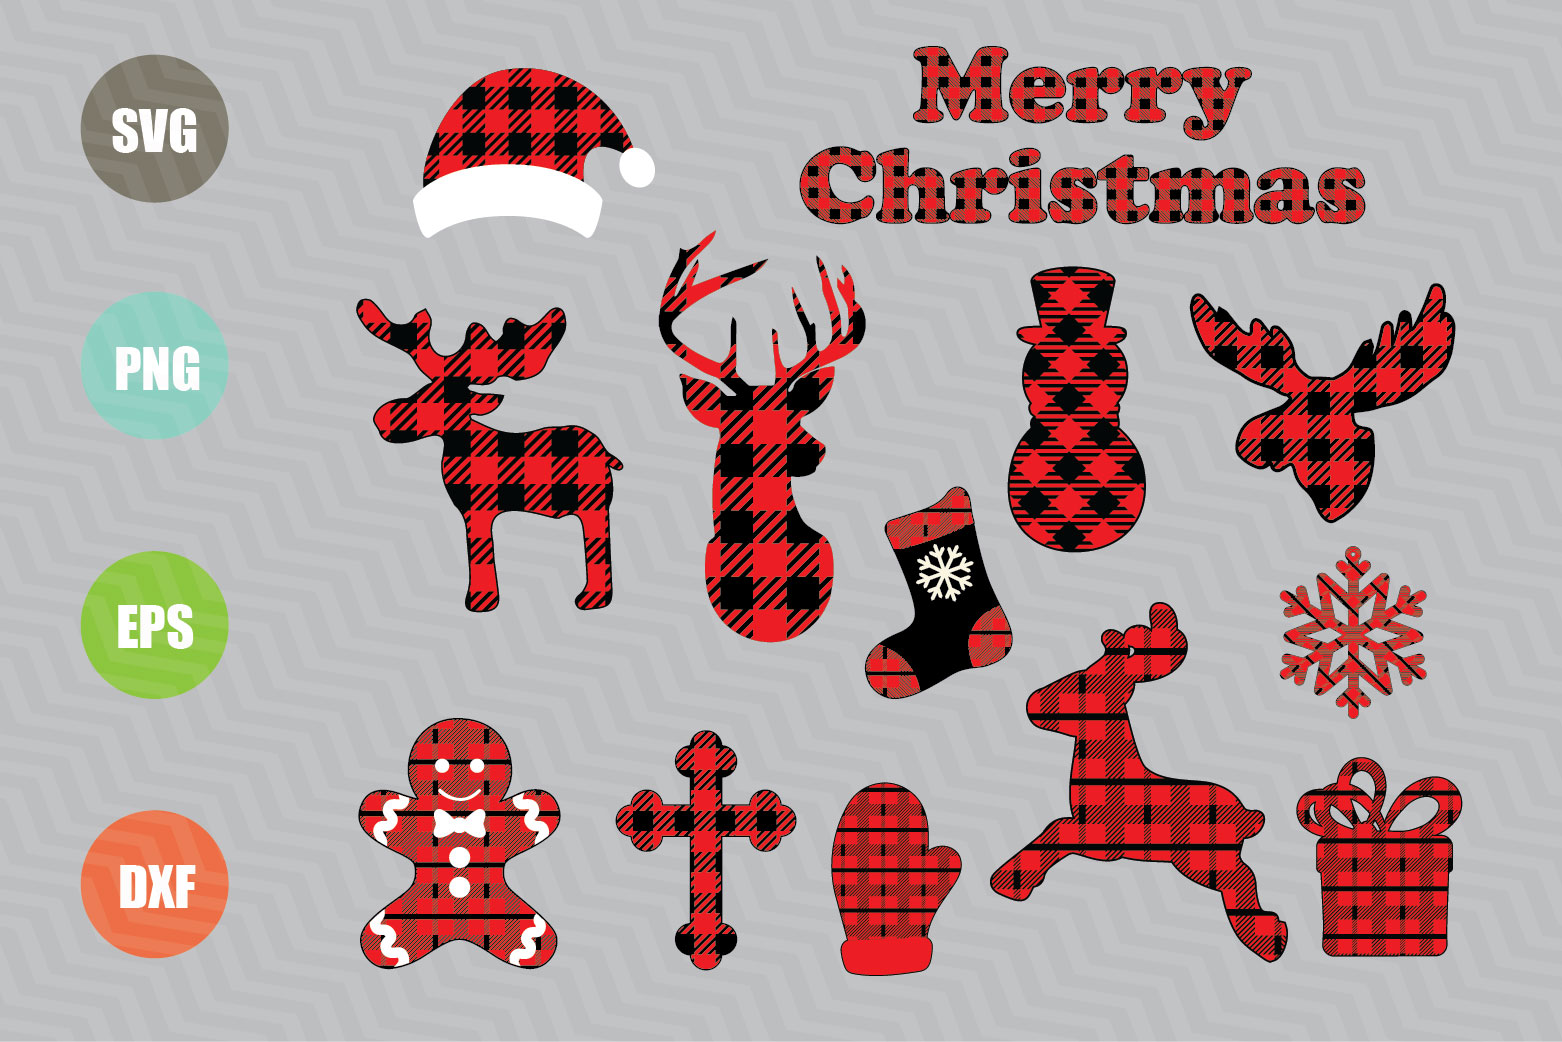 Download Free Christmas Ornaments Graphic By Logotrain034 Creative Fabrica for Cricut Explore, Silhouette and other cutting machines.